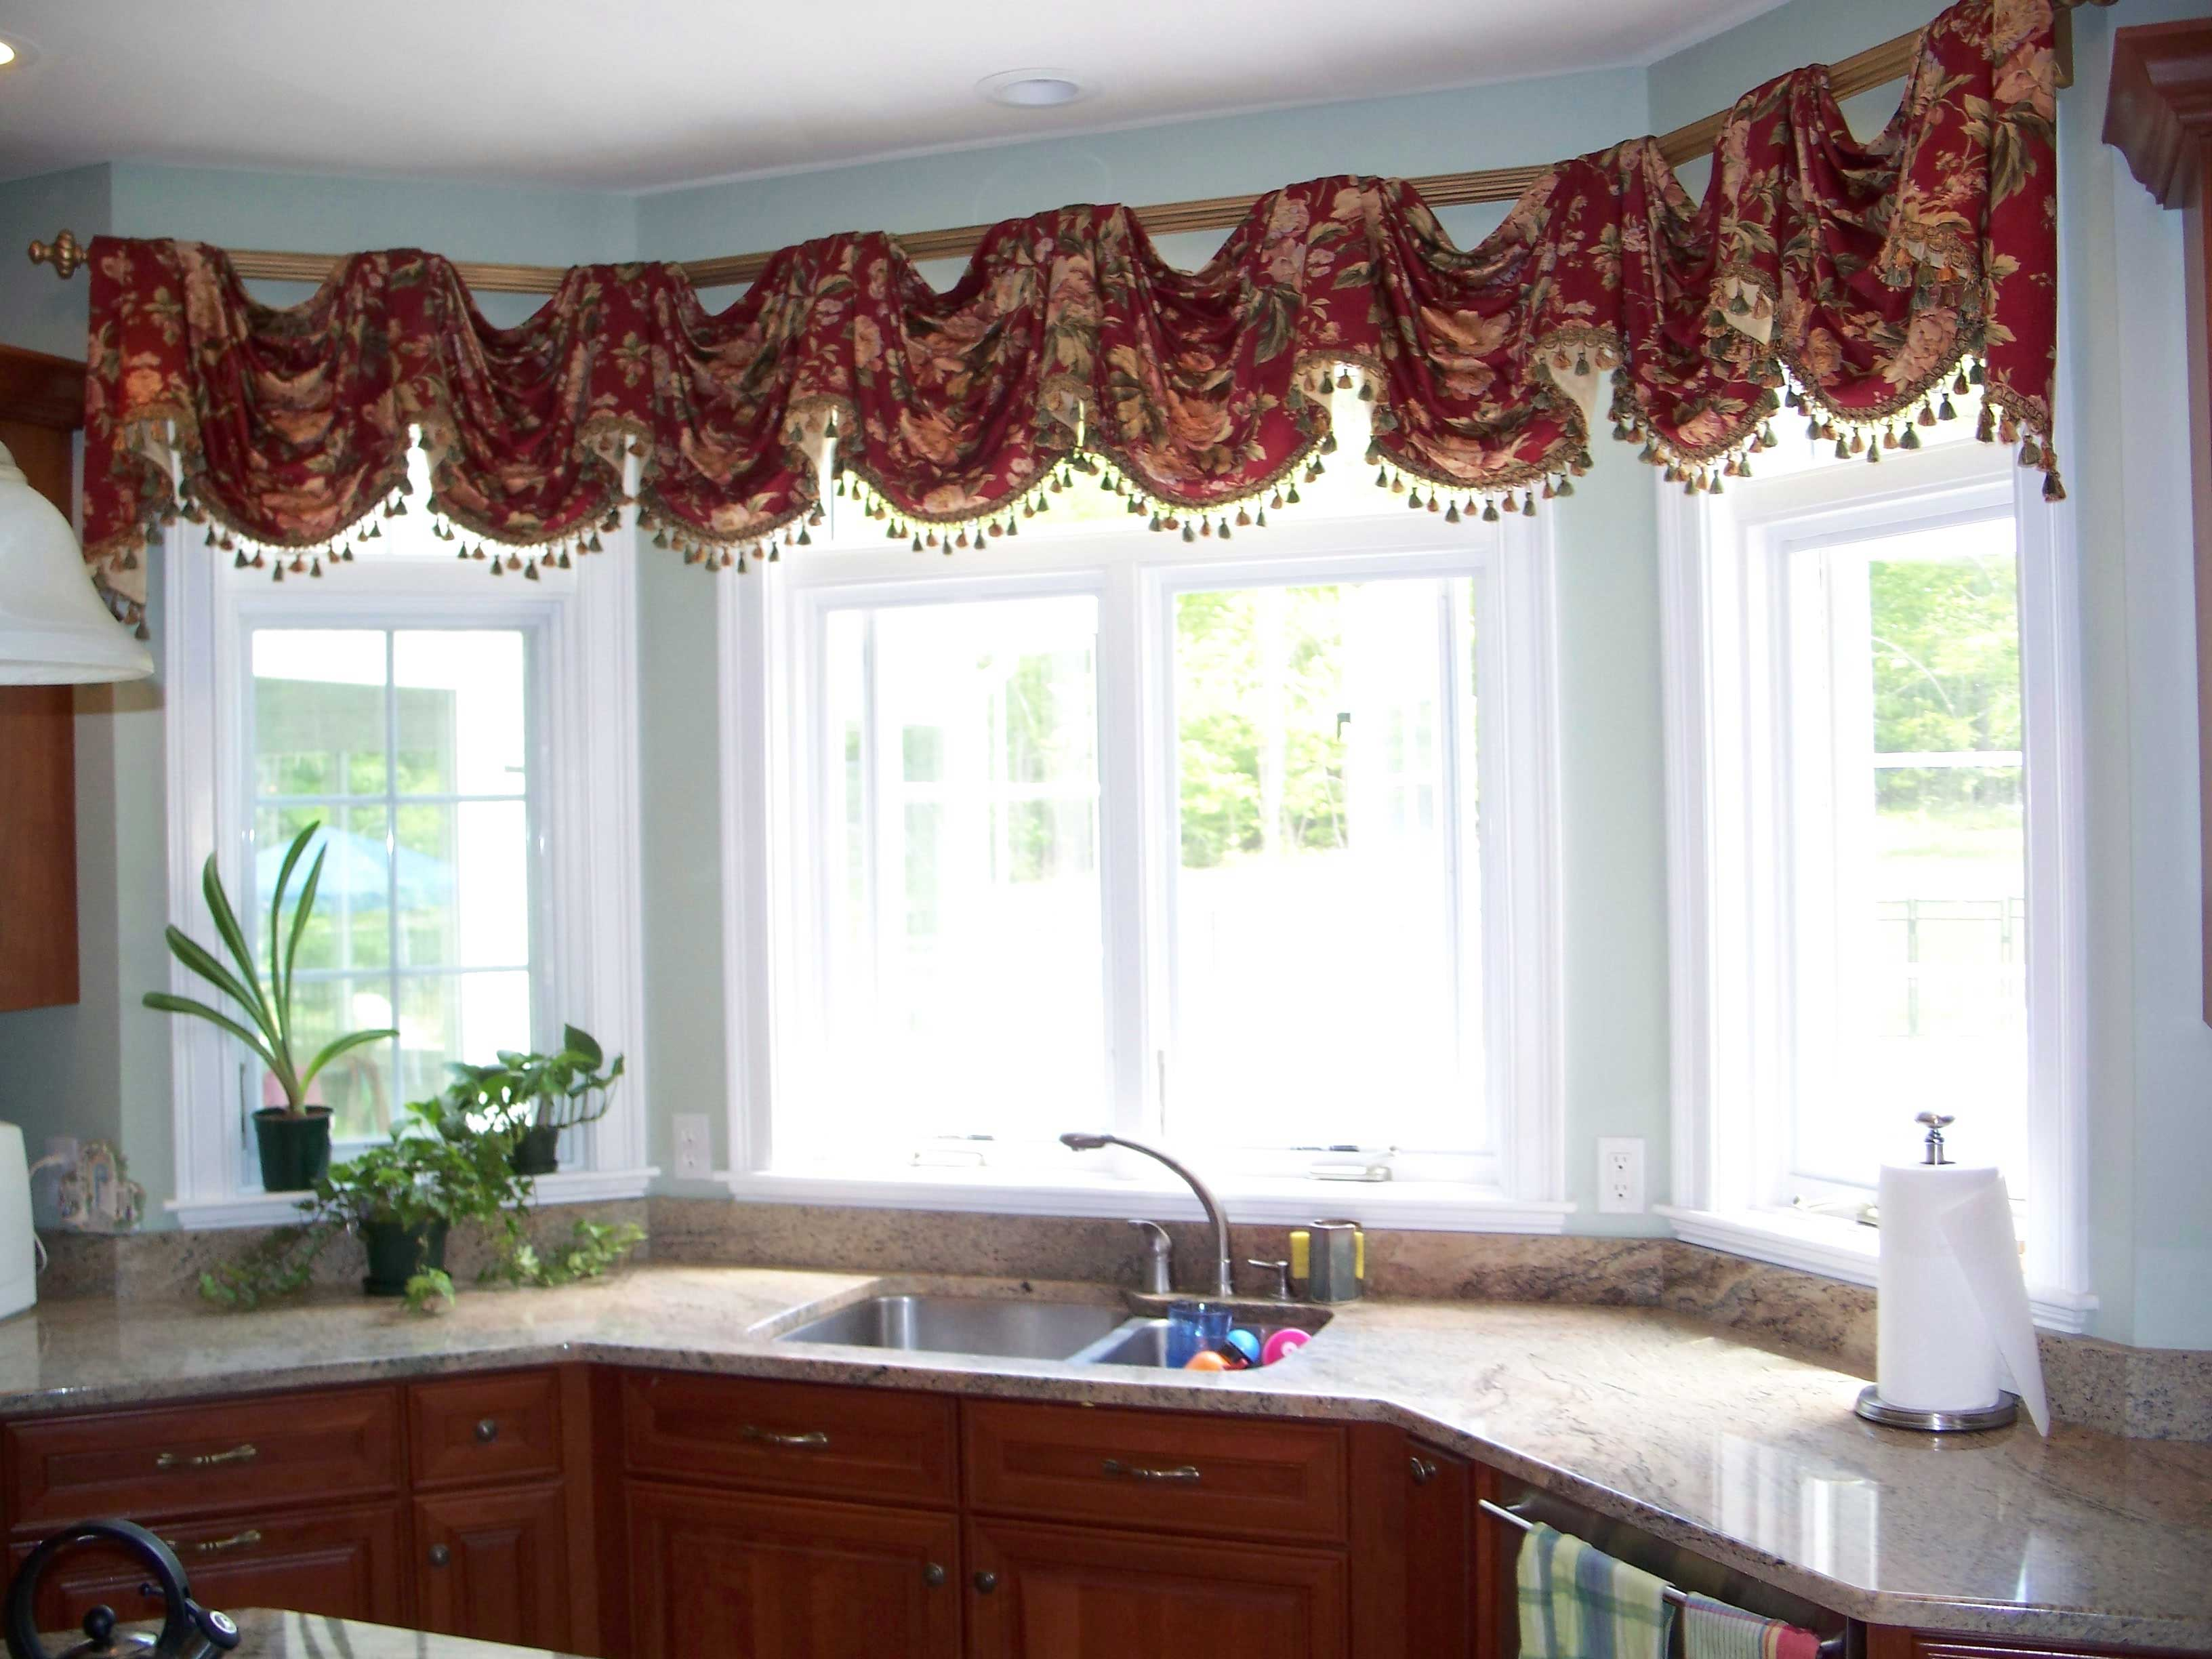 Appealing Classic Style Kitchen Curtain Ideas with Long Patterned Valance